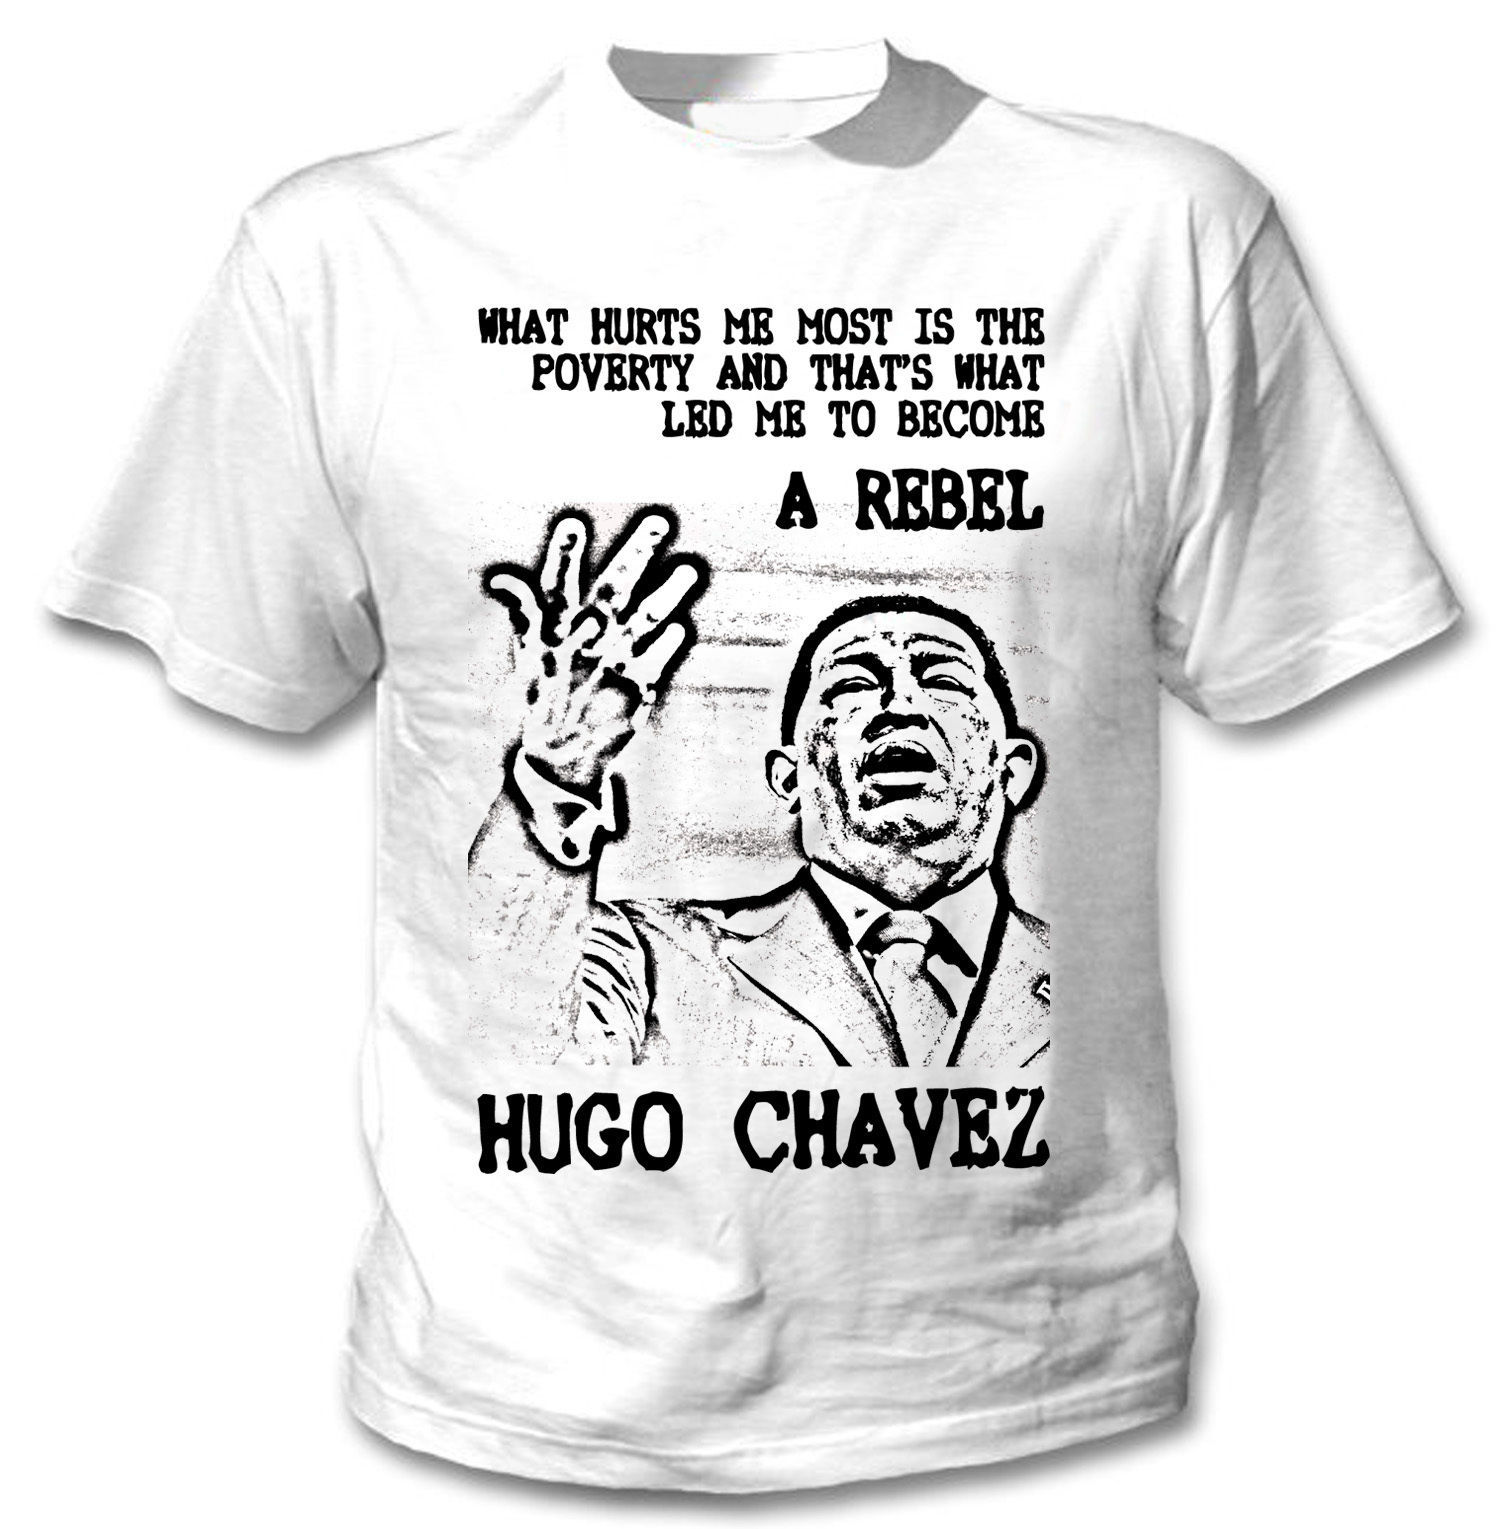 Primary image for HUGO CHAVEZ REBEL  QUOTE 3 -  NEW AMAZING GRAPHIC TSHIRT- S-M-L-XL-XXL